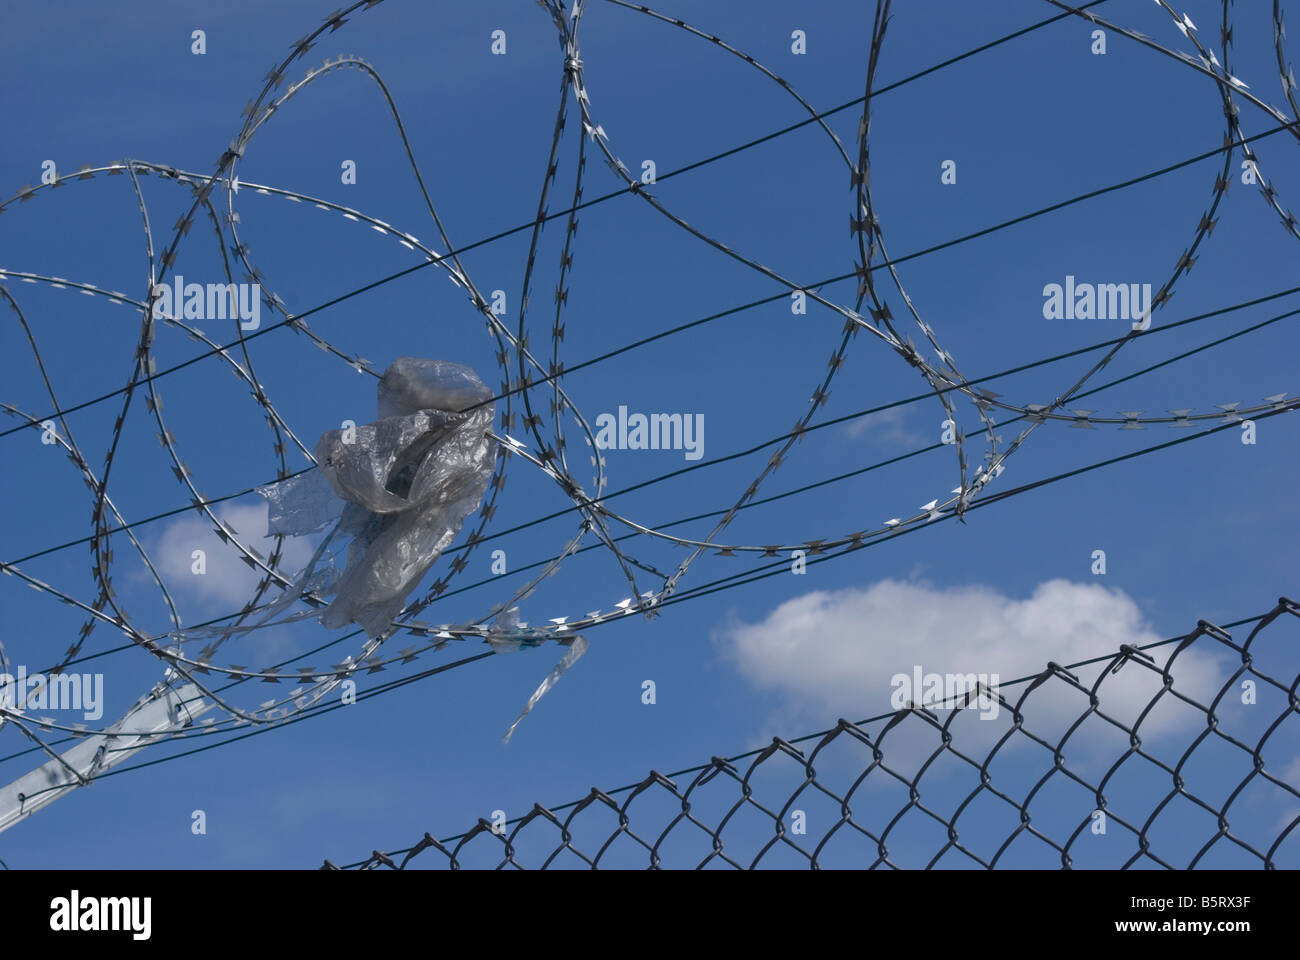 Barbed Wire Fence With Rubbish Stock Photos & Barbed Wire Fence With ...